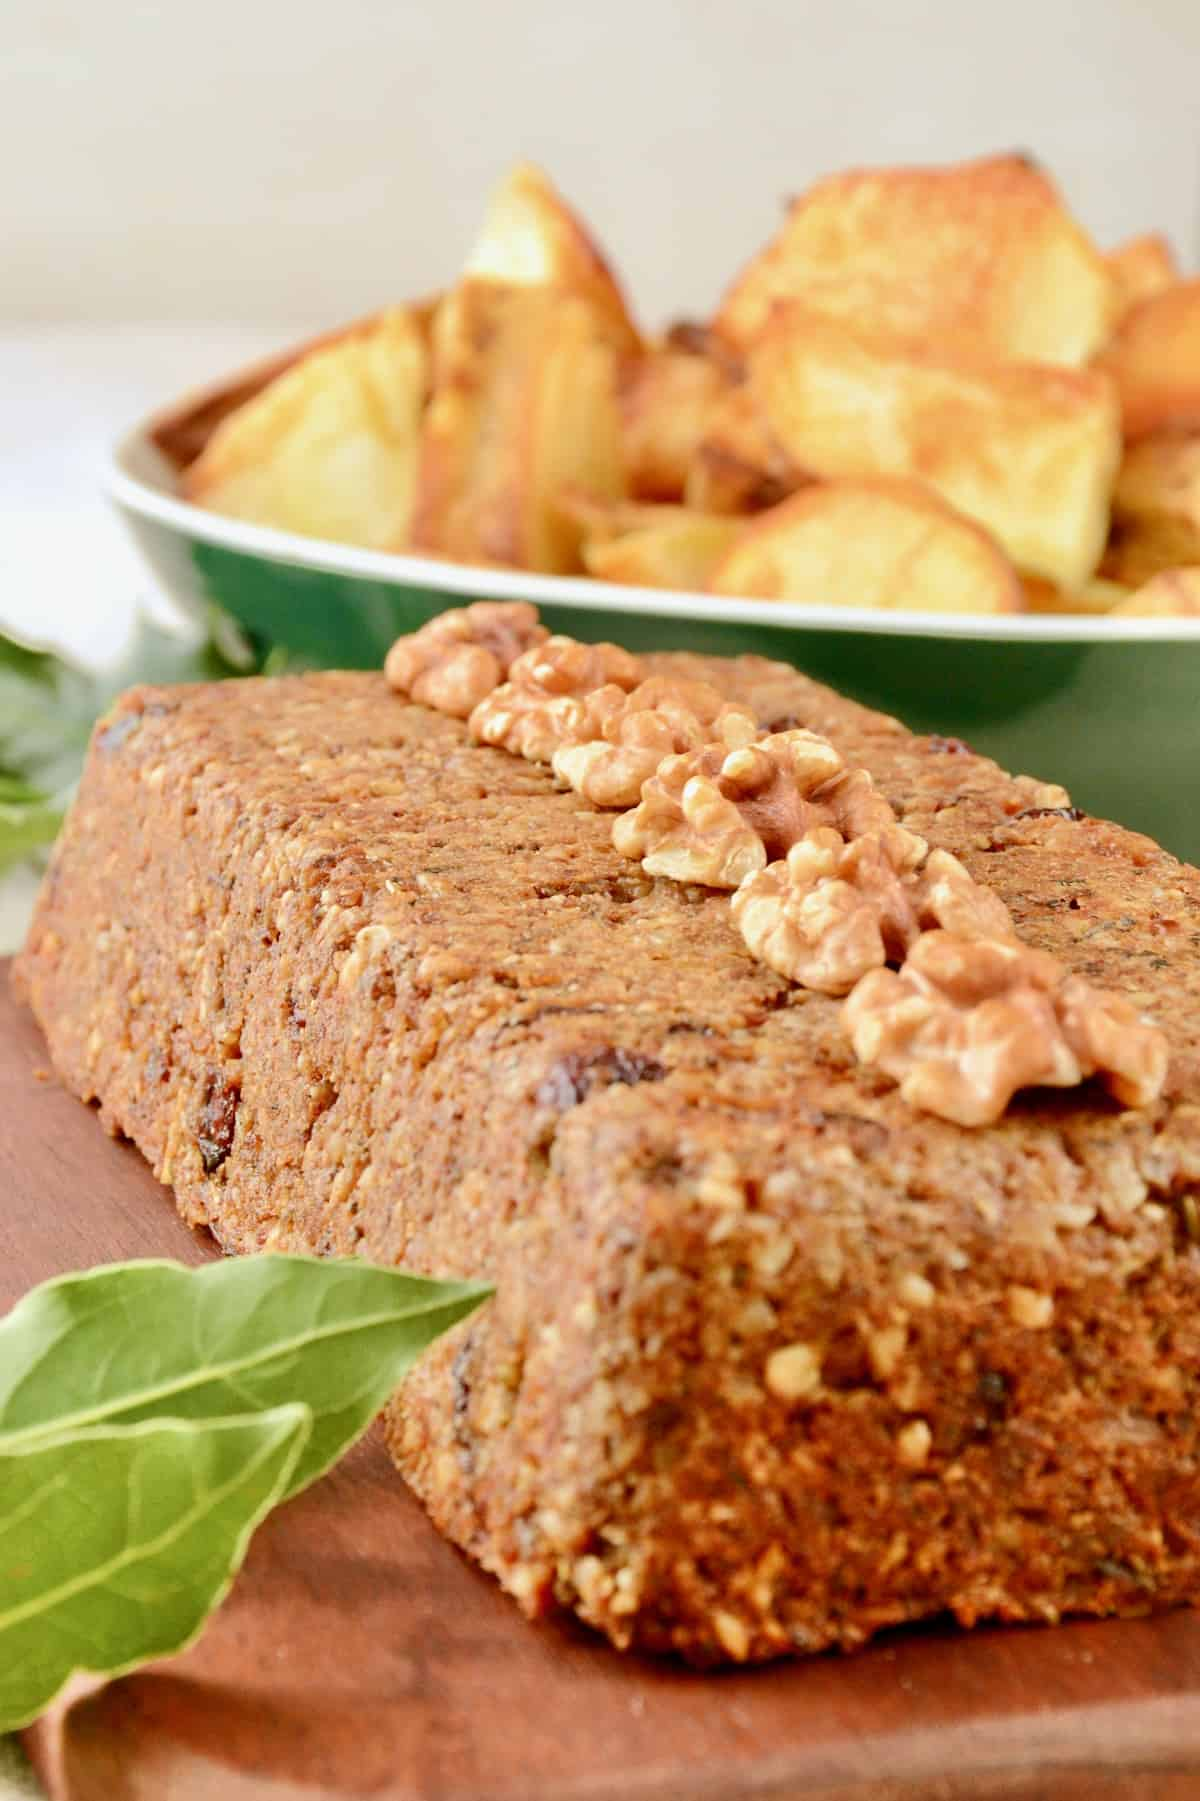 The whole loaf of nut roast served topped with walnut halves on a wooden board next to a dish full of baked potatoes.